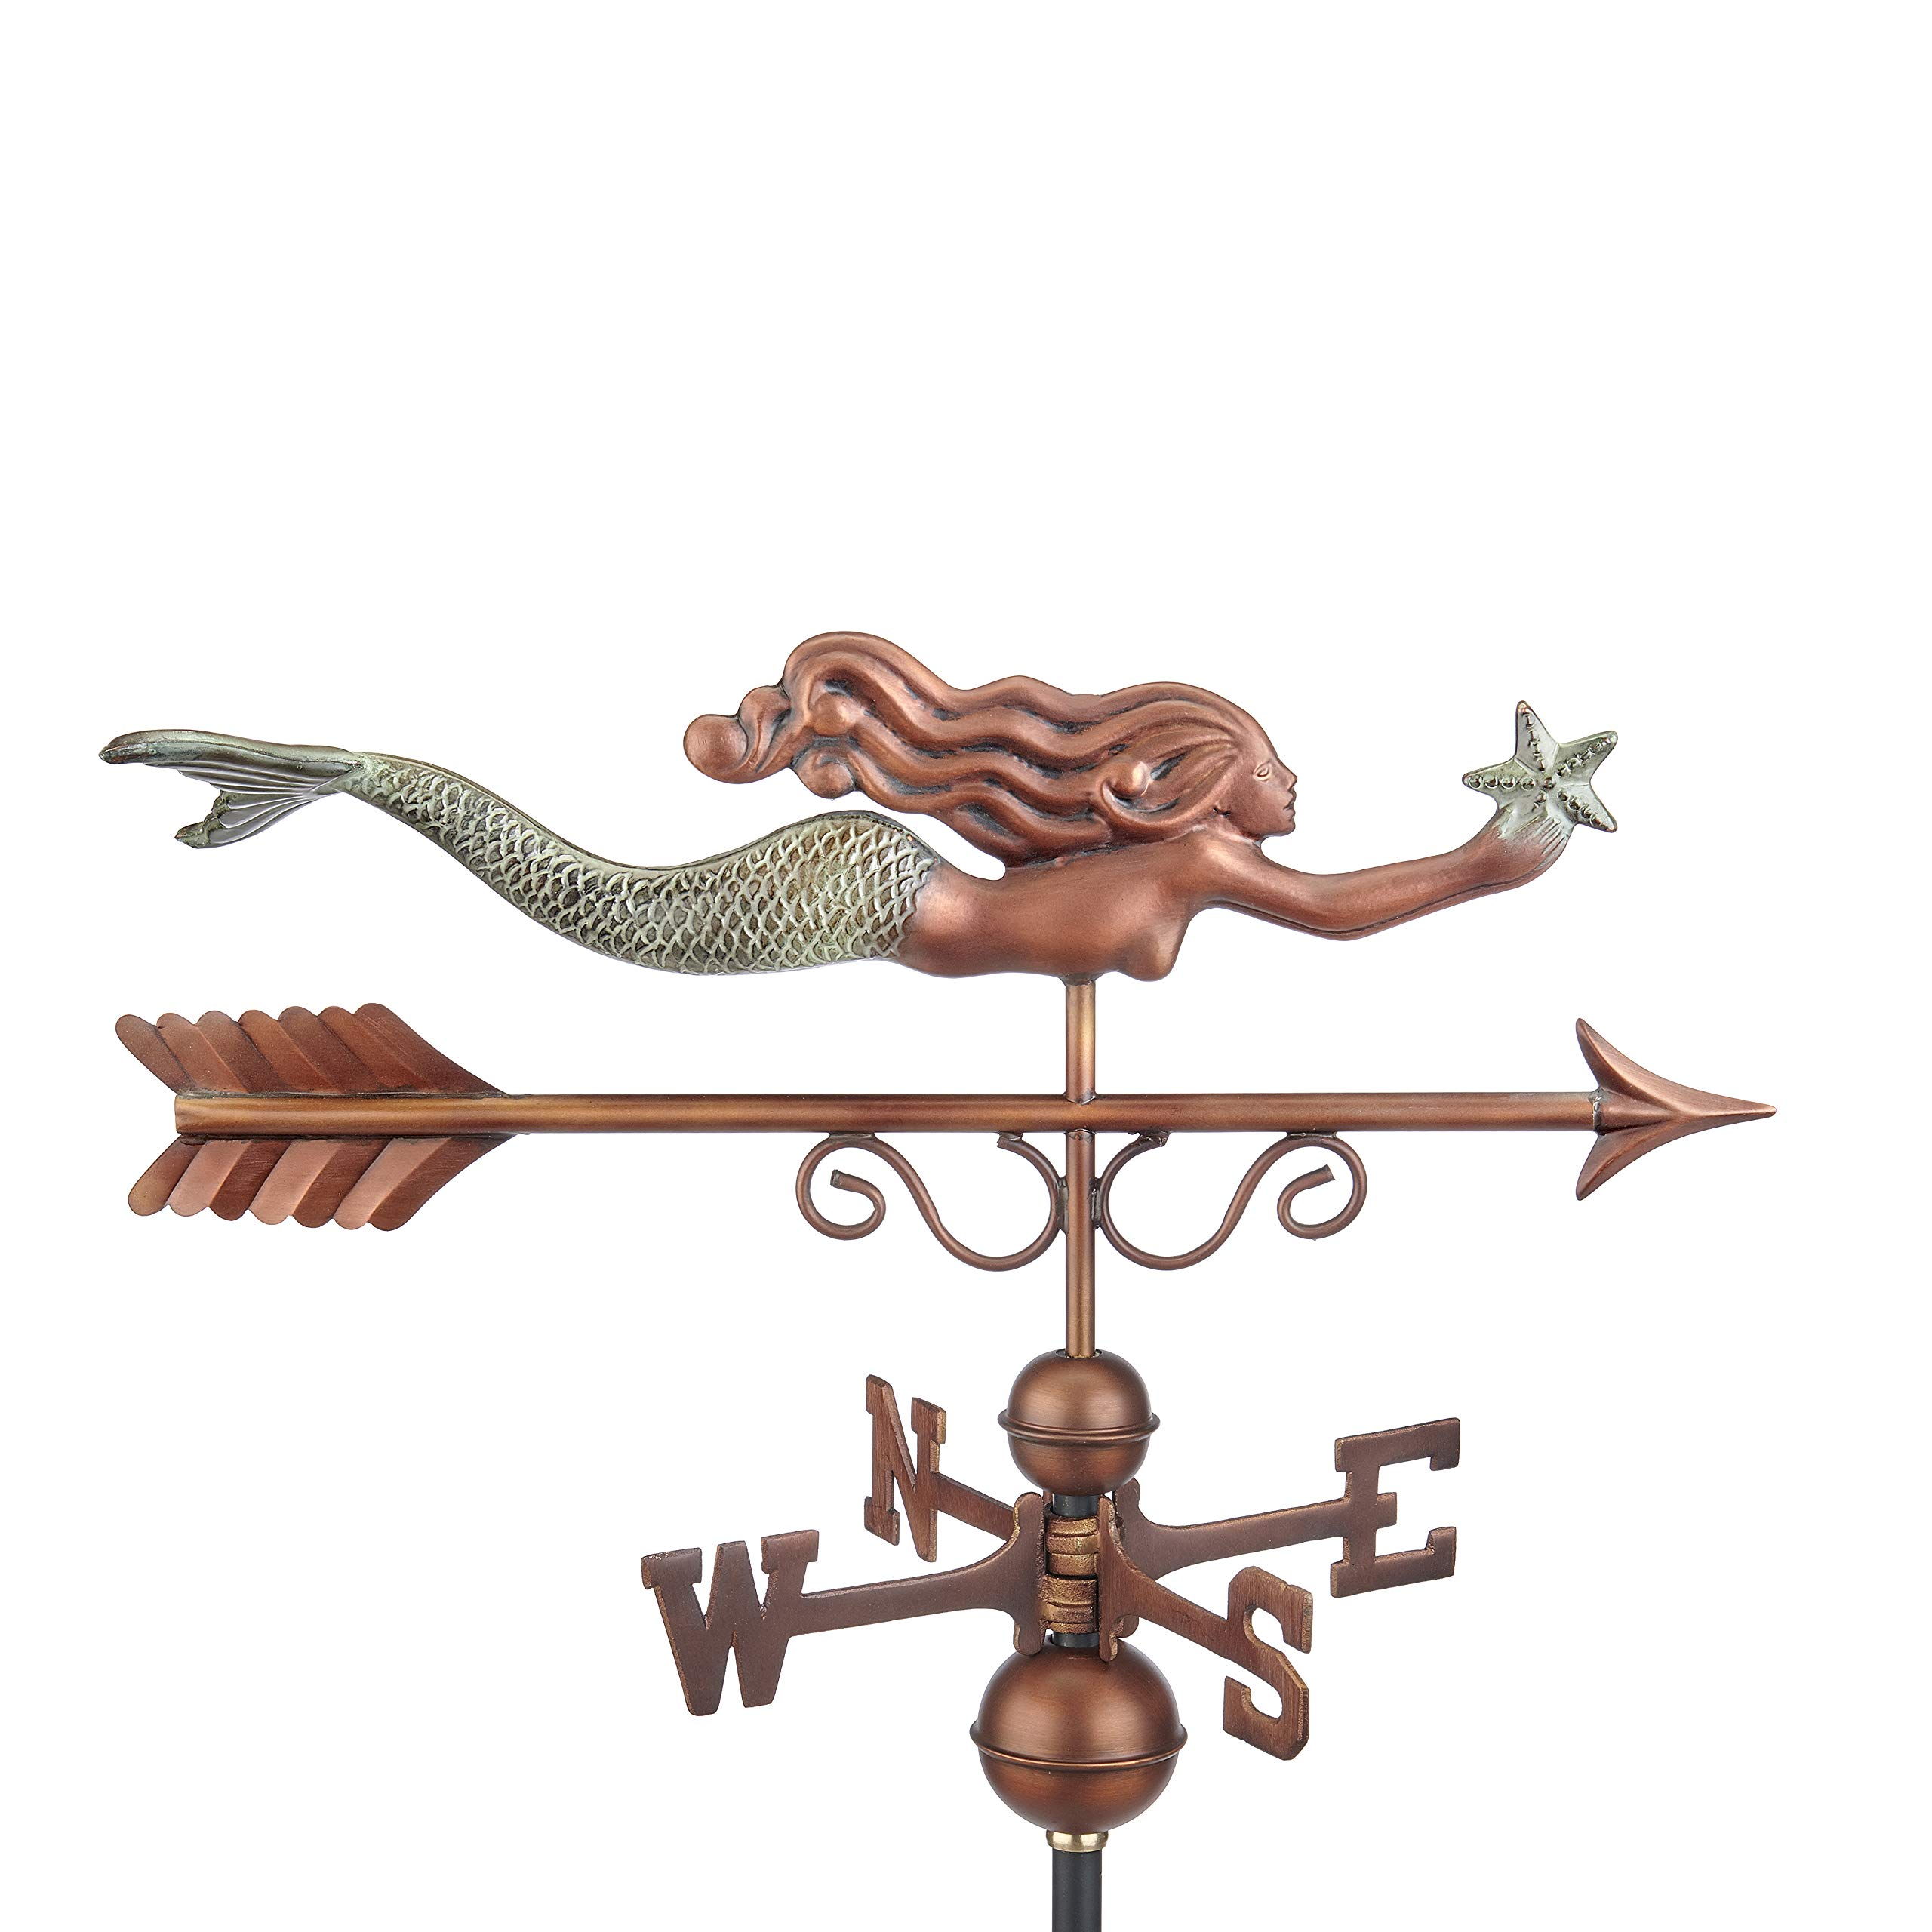 Good Directions 1978GRN Little Mermaid Weathervane, Pure Copper Hand Finished Patina